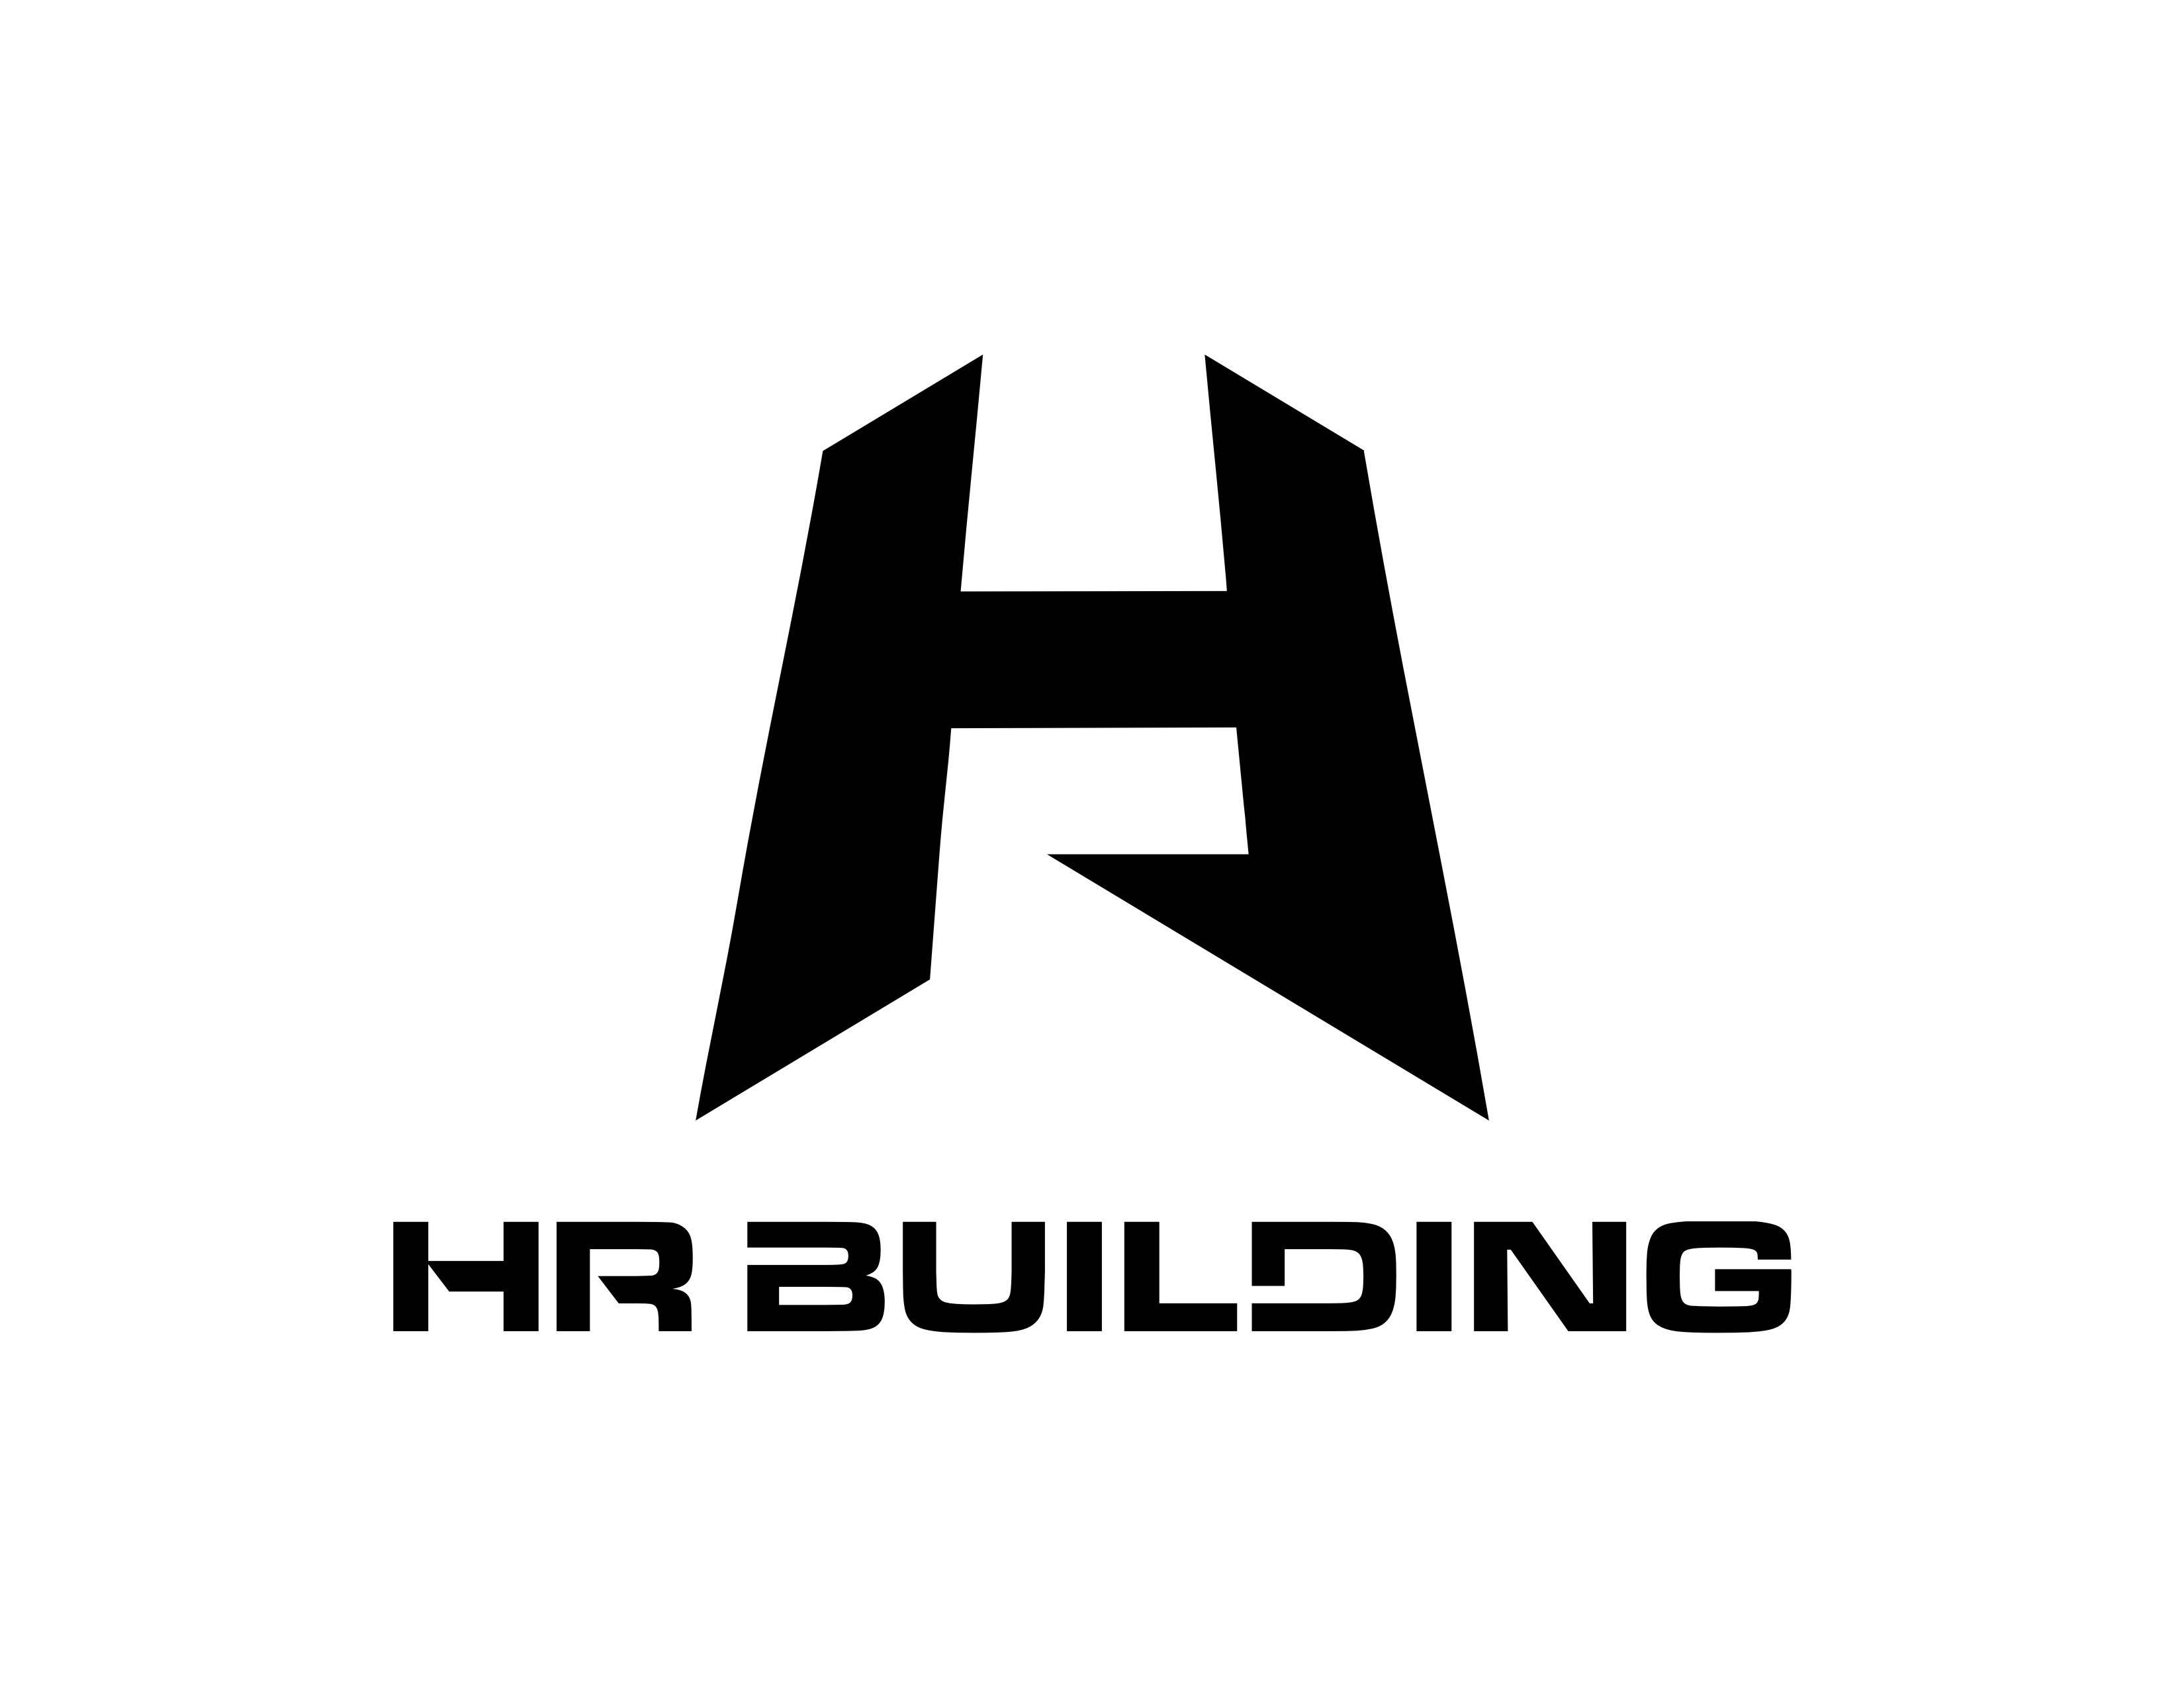 Create a logo and business card for HR building